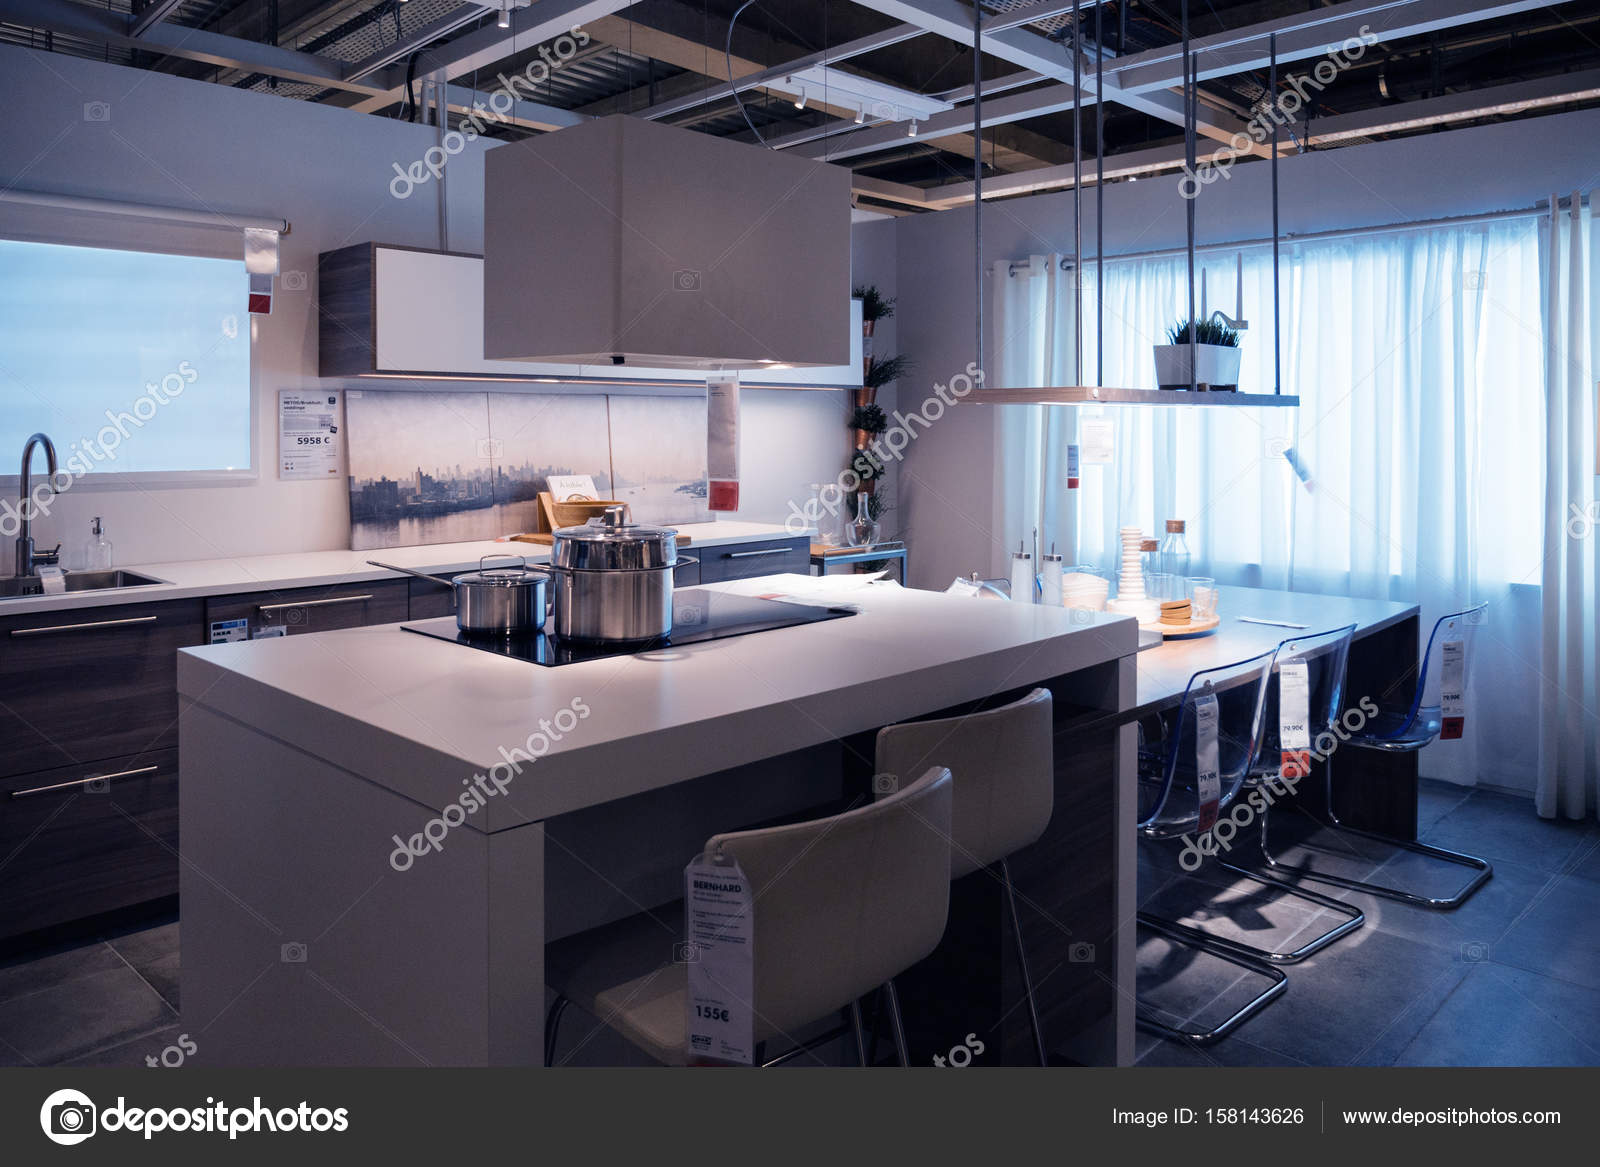 Ikea Home Planner Italiano photos: ikea kitchens | ikea kitchen store model home